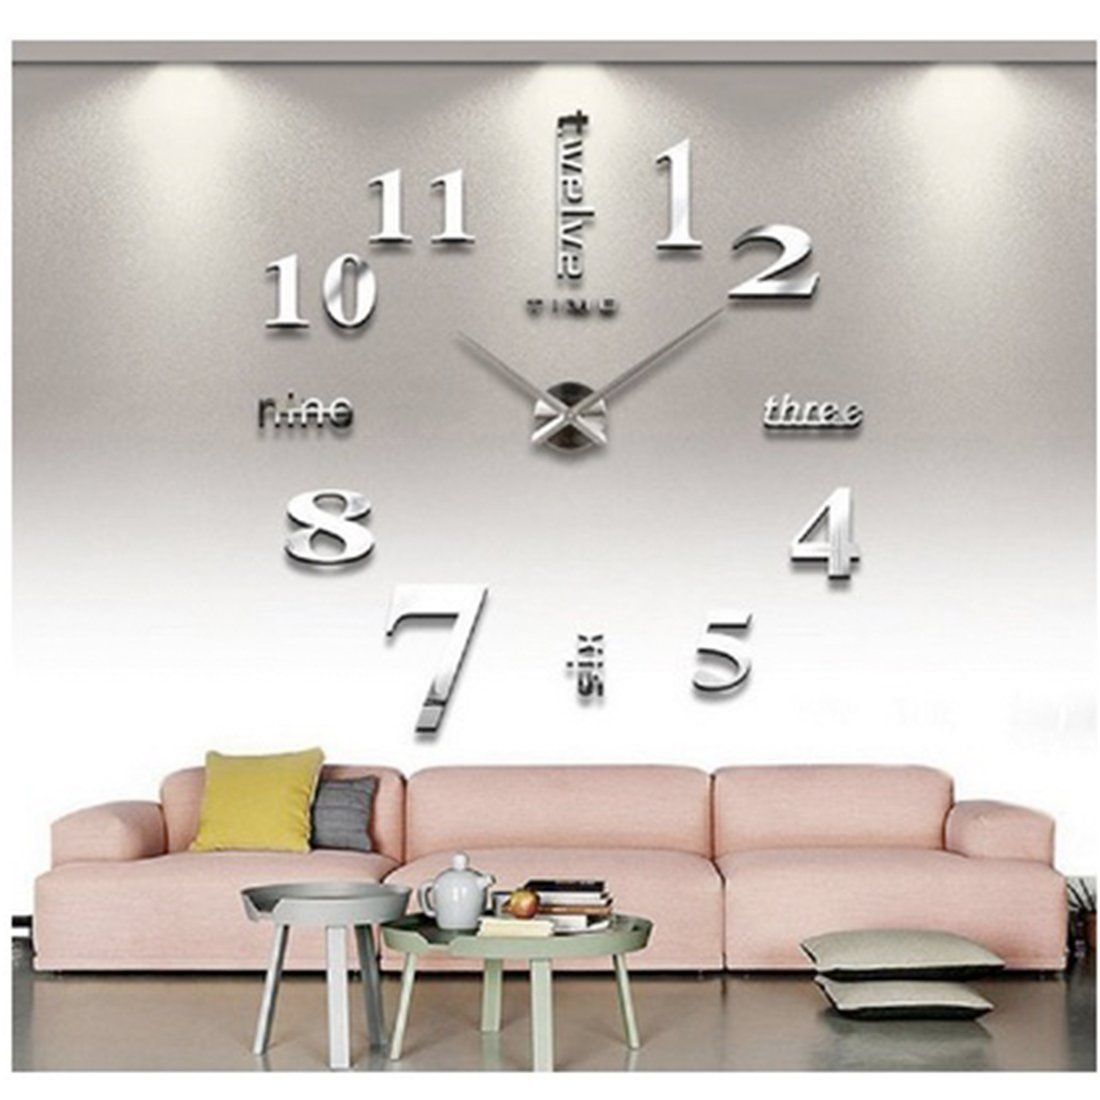 Yosoo Fashion Acrylic Modern Large Diy Wall Clock 3d Wall Clock Kit Decoration Home For Living Room Bedroom Silvery Walmart Com In 2020 Diy Clock Wall Easy Diy Room Decor Wall